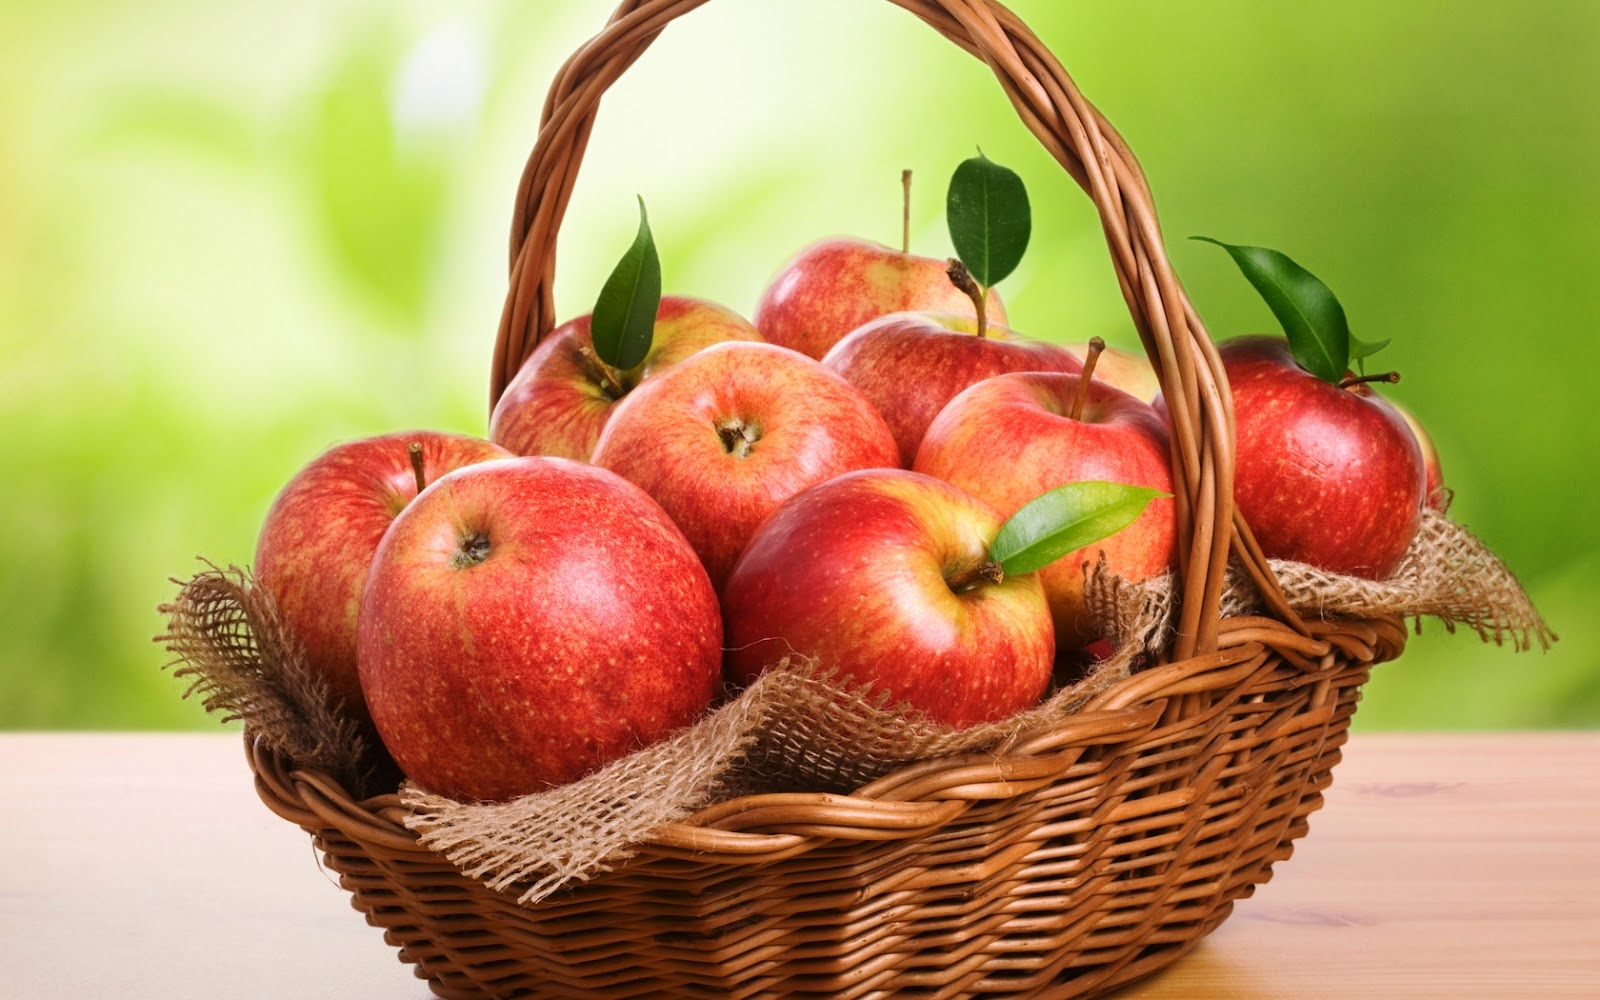 fresh red apples in a basket hd wallpaper | hd nature wallpapers